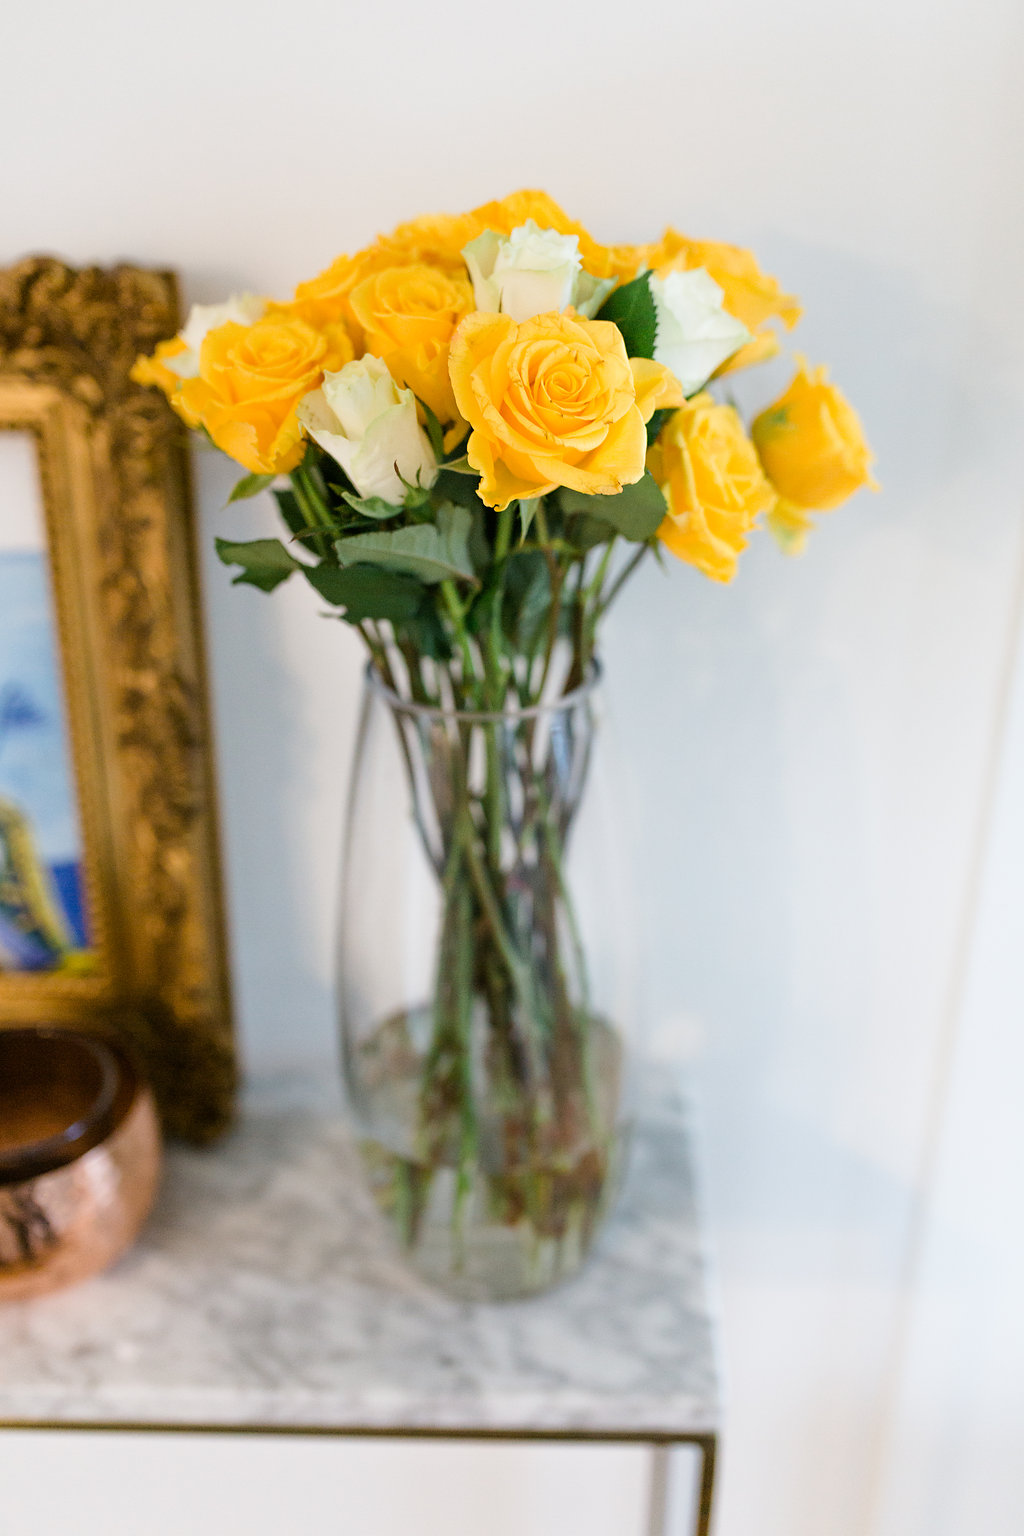 Make the most of midsummer with fresh yellow and gold shades in the bedroom.